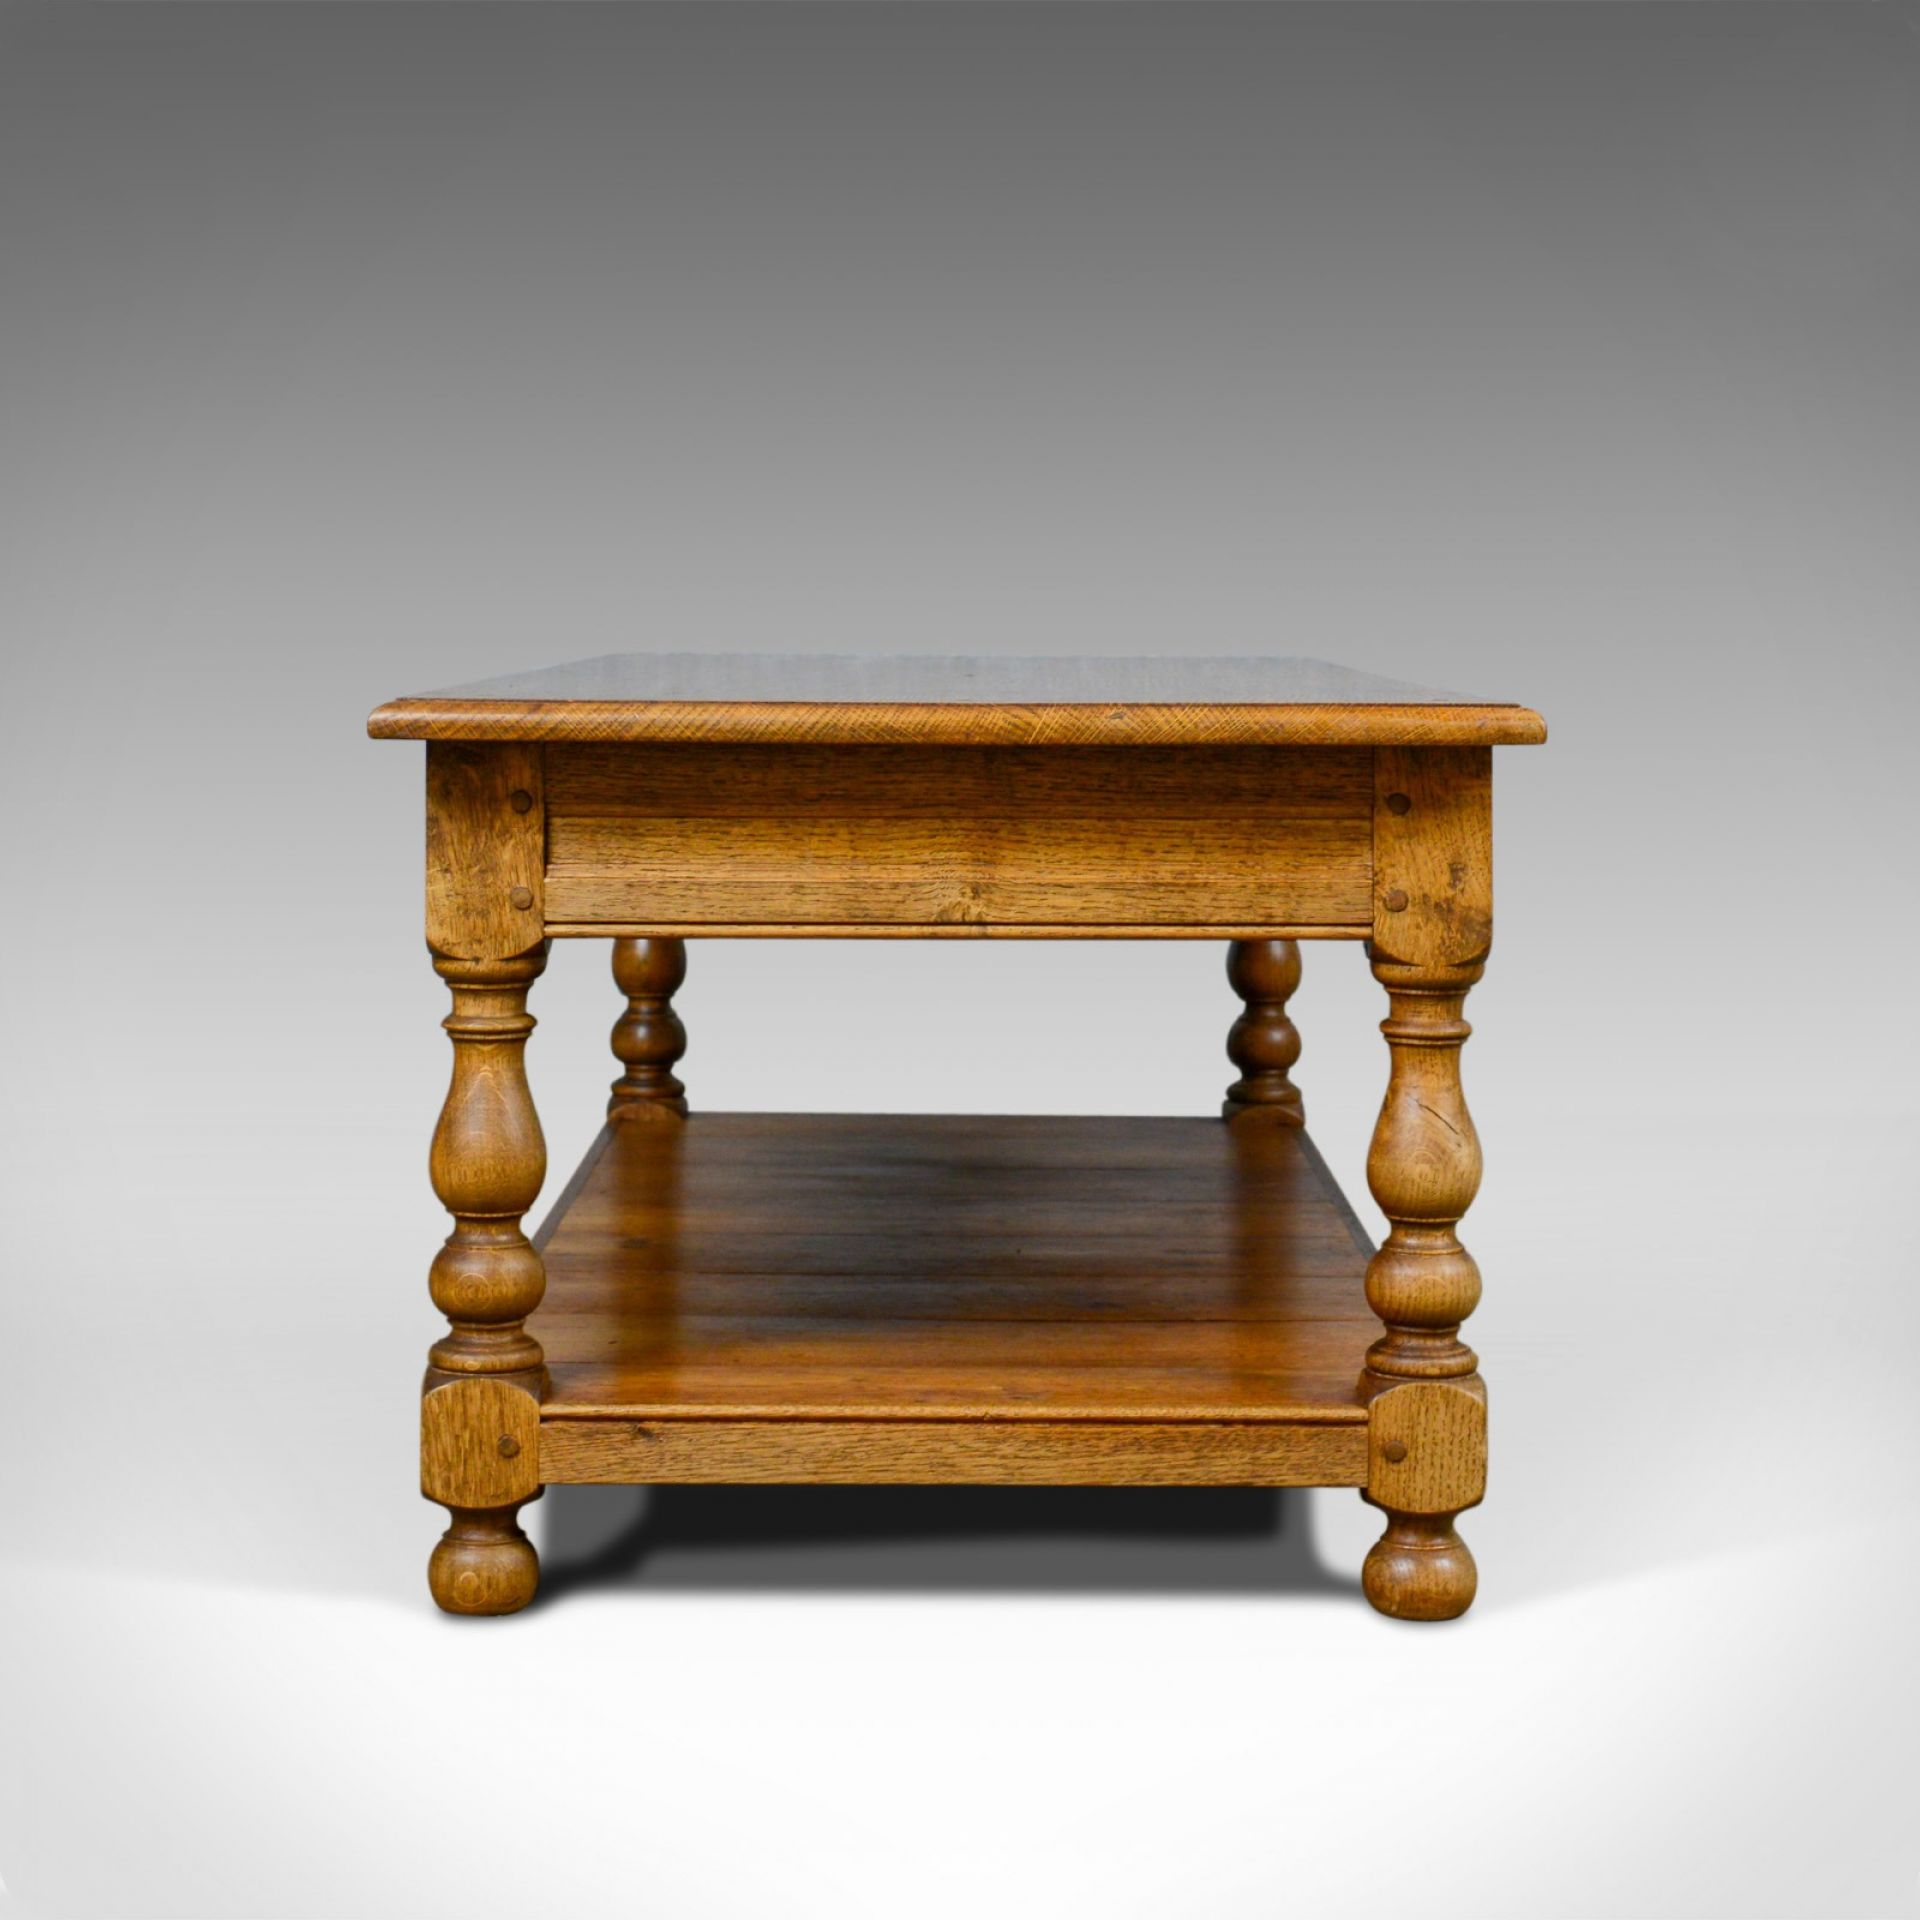 Vintage Oak Coffee Table, English, Drawers, Late 20th Century